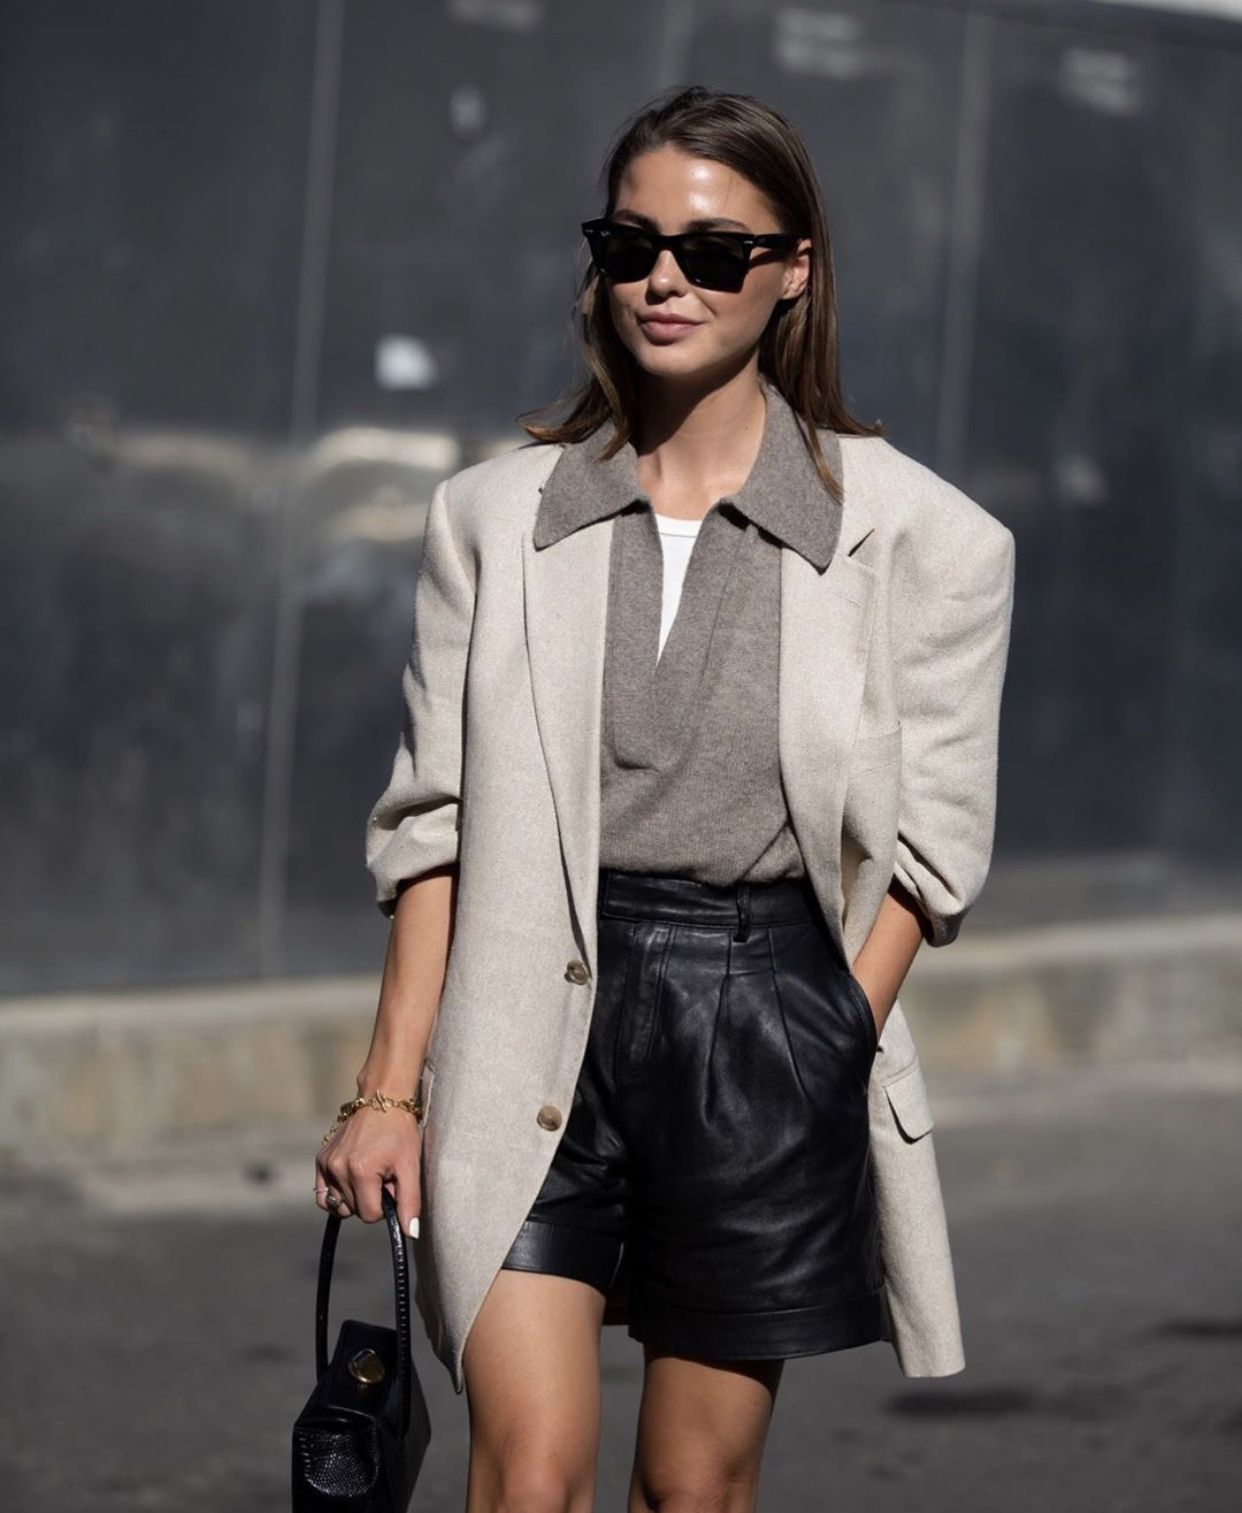 Style Inspiration: Outfit Ideas with a Blend of Trends & Timeless Pieces